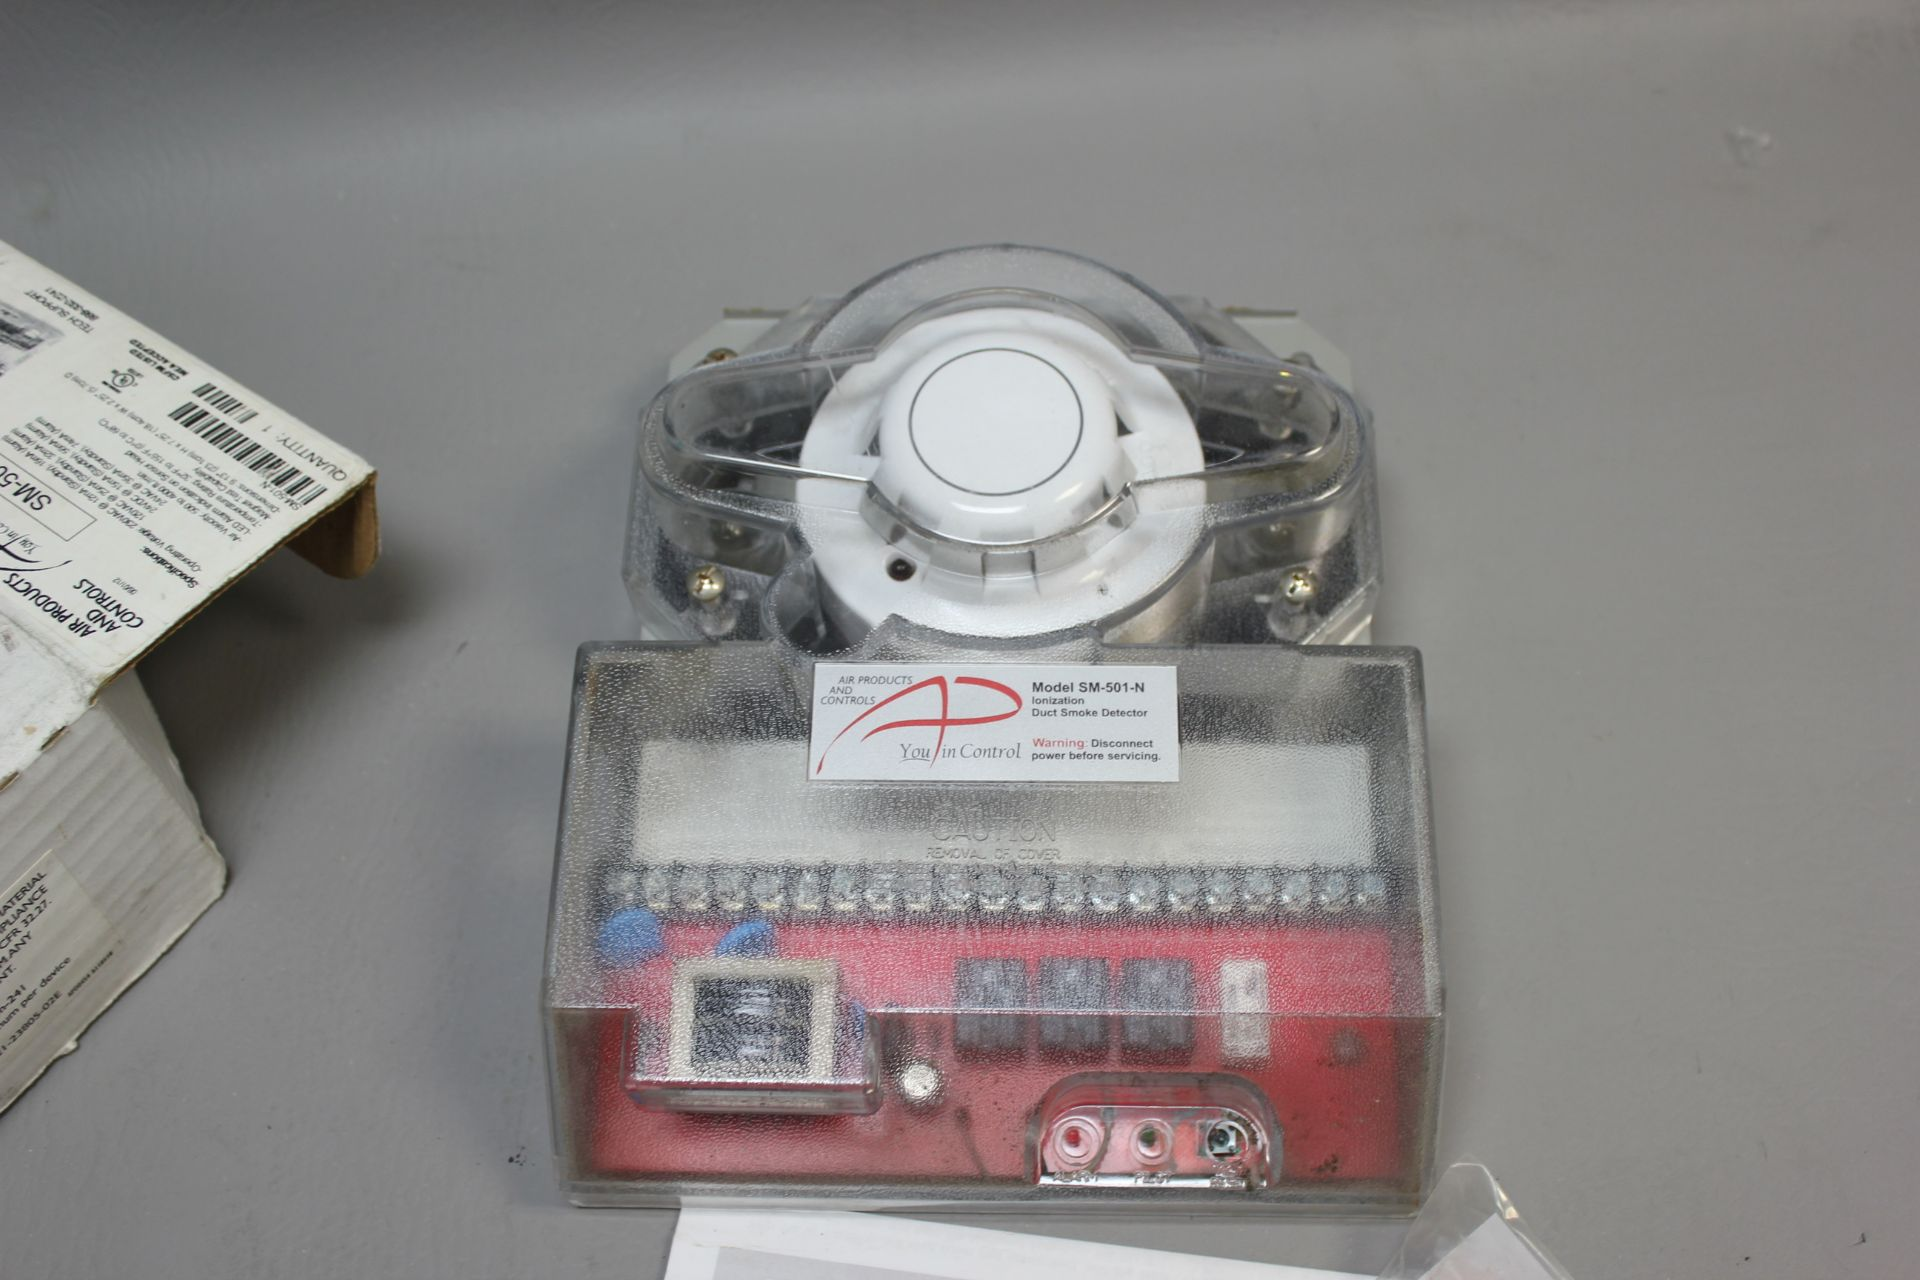 NEW AIR PRODUCTS 4 WIRE DUCT SMOKE DETECTOR - Image 4 of 5